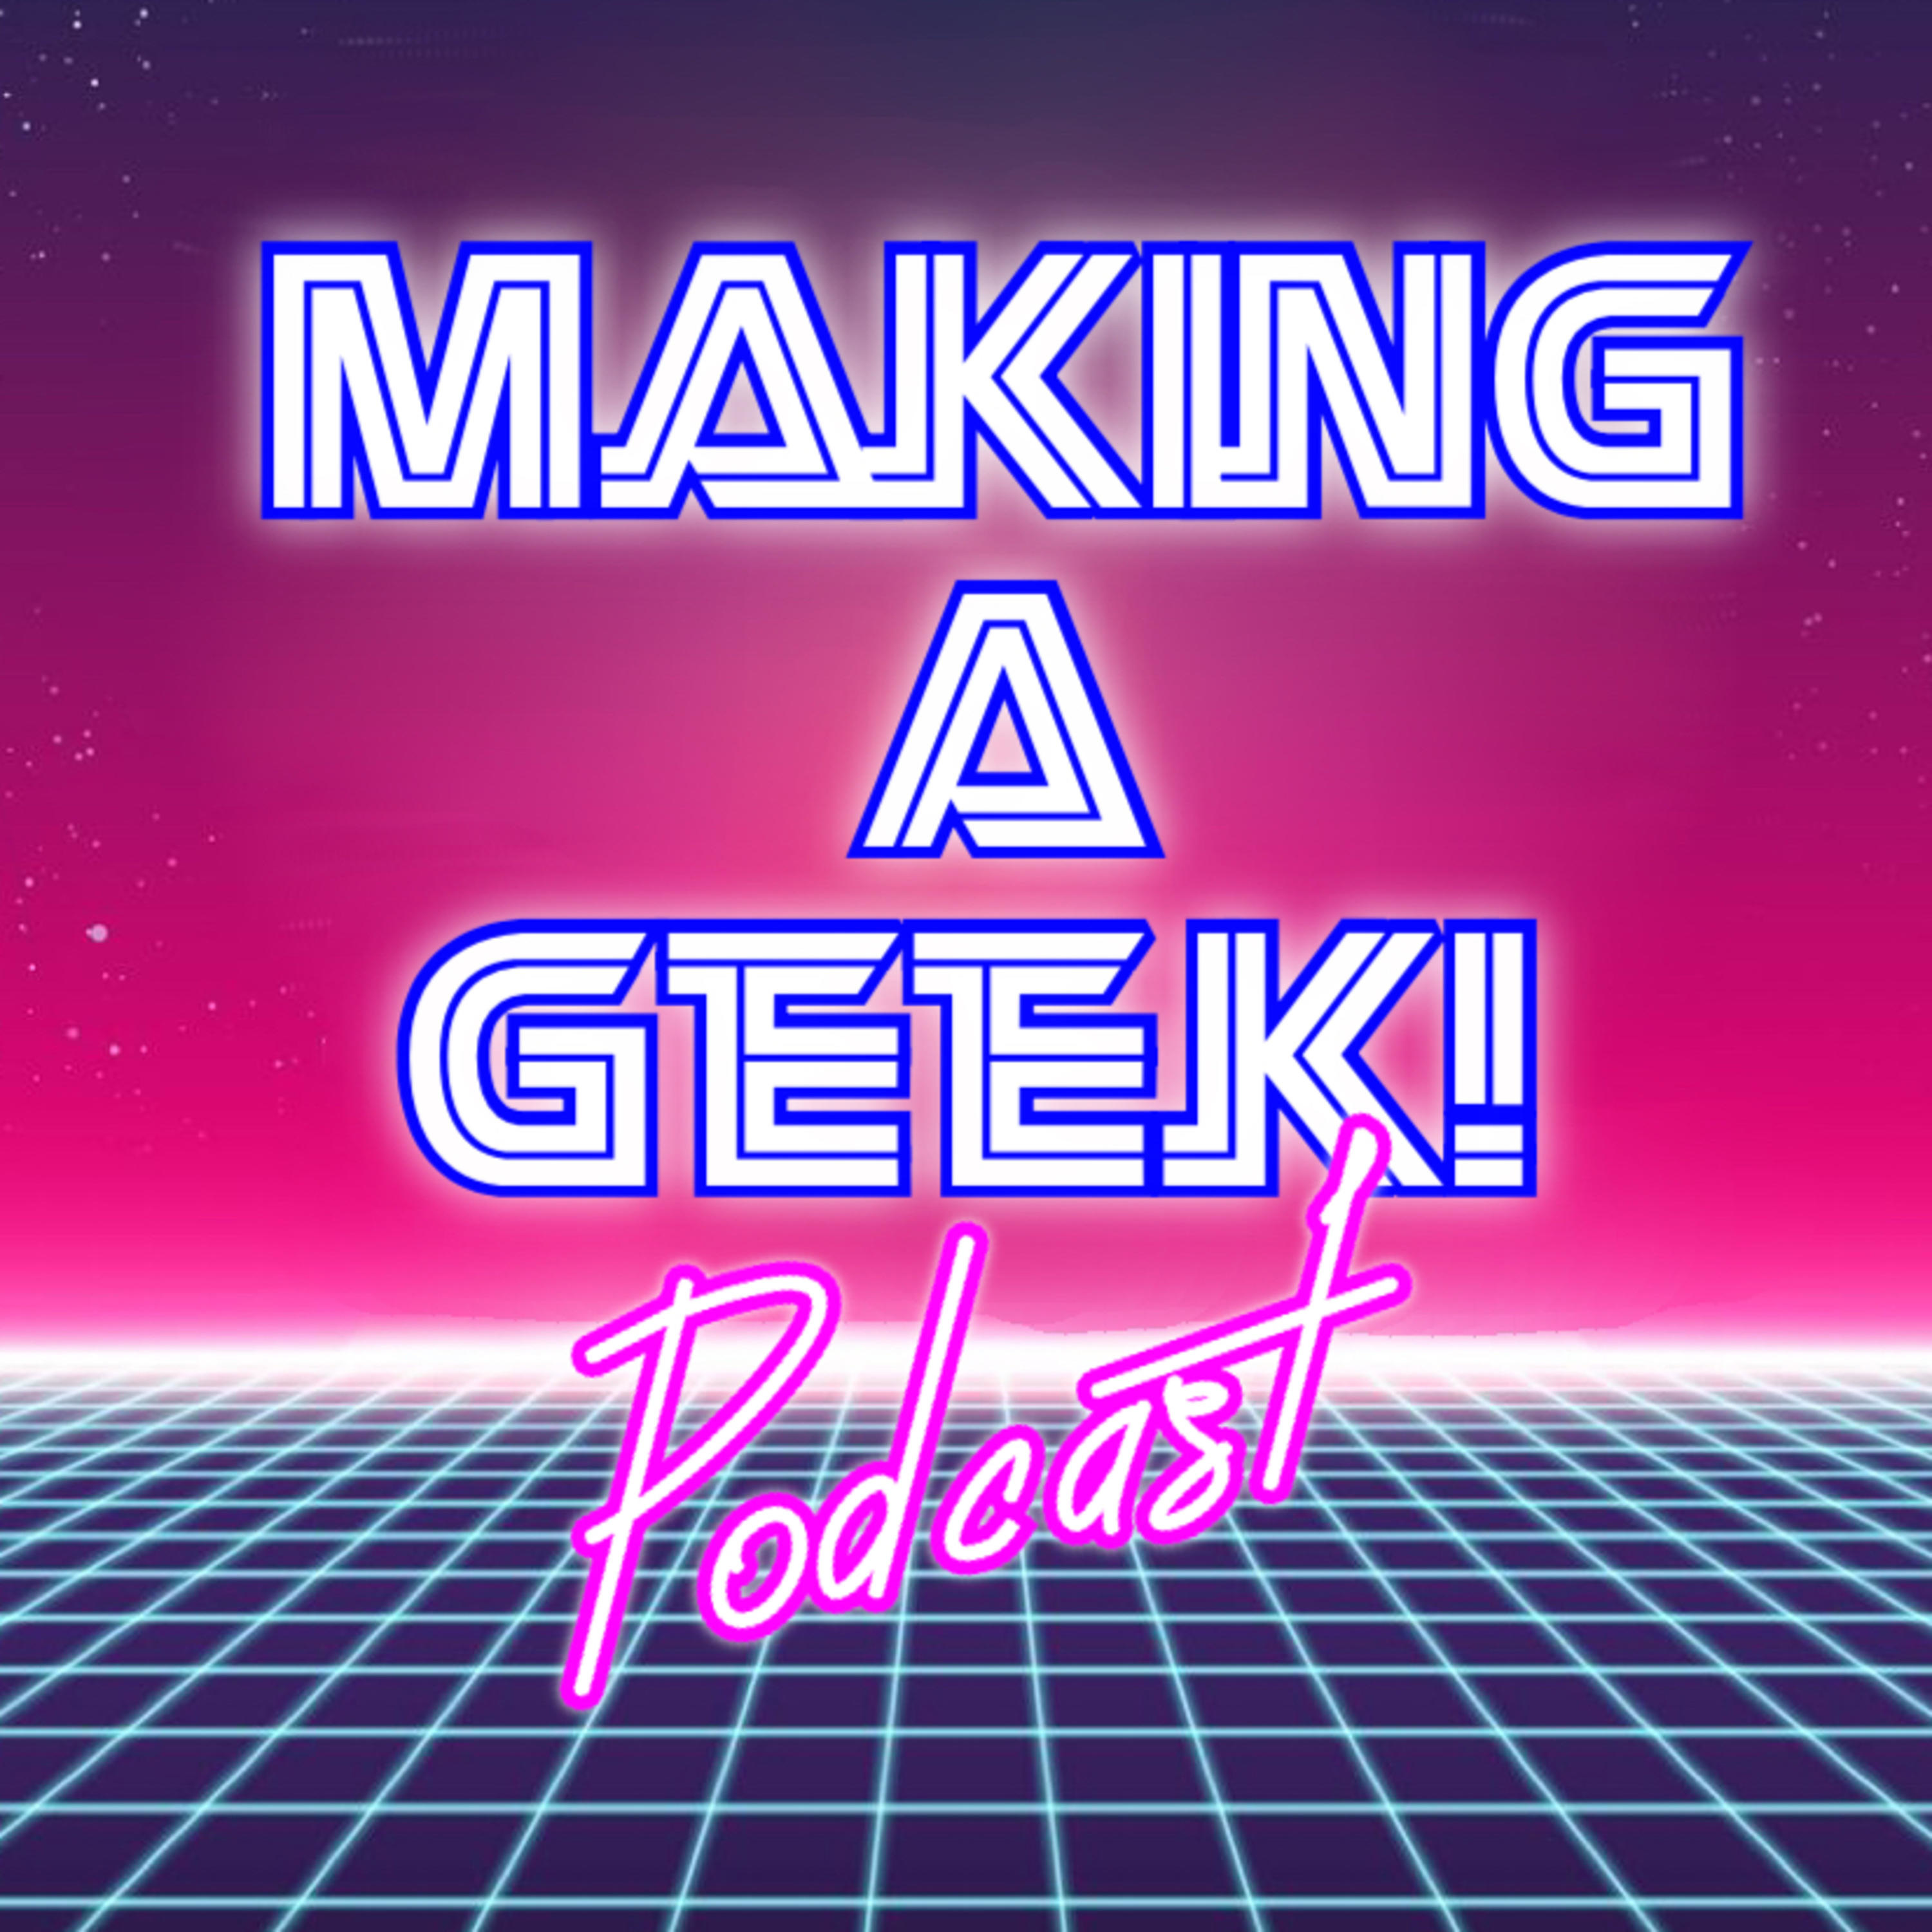 Making a Geek! Podcast